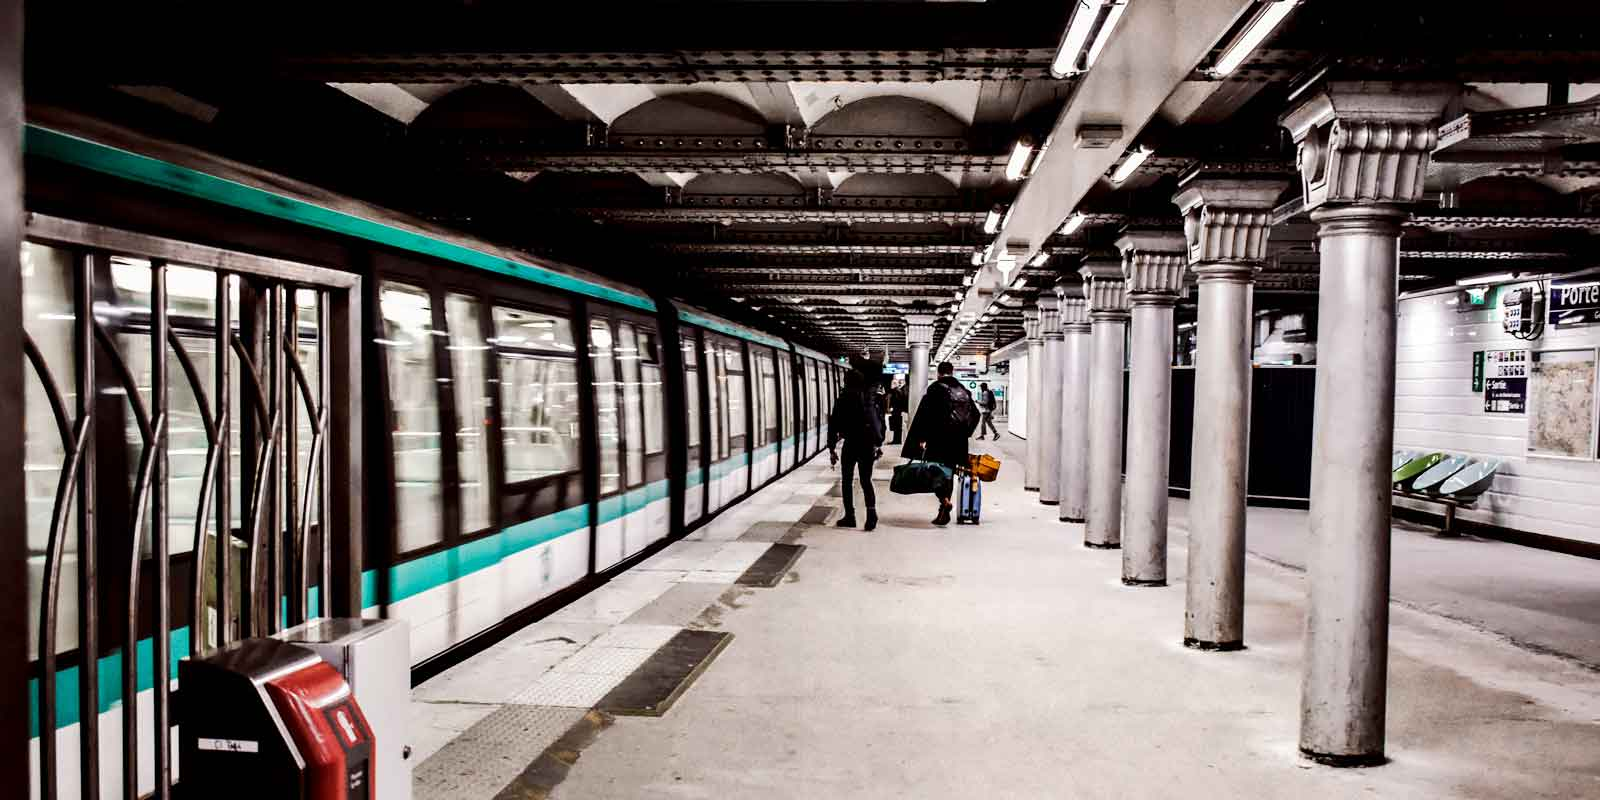 A Paris Metro train pulls into a train station while a few people wait to board.